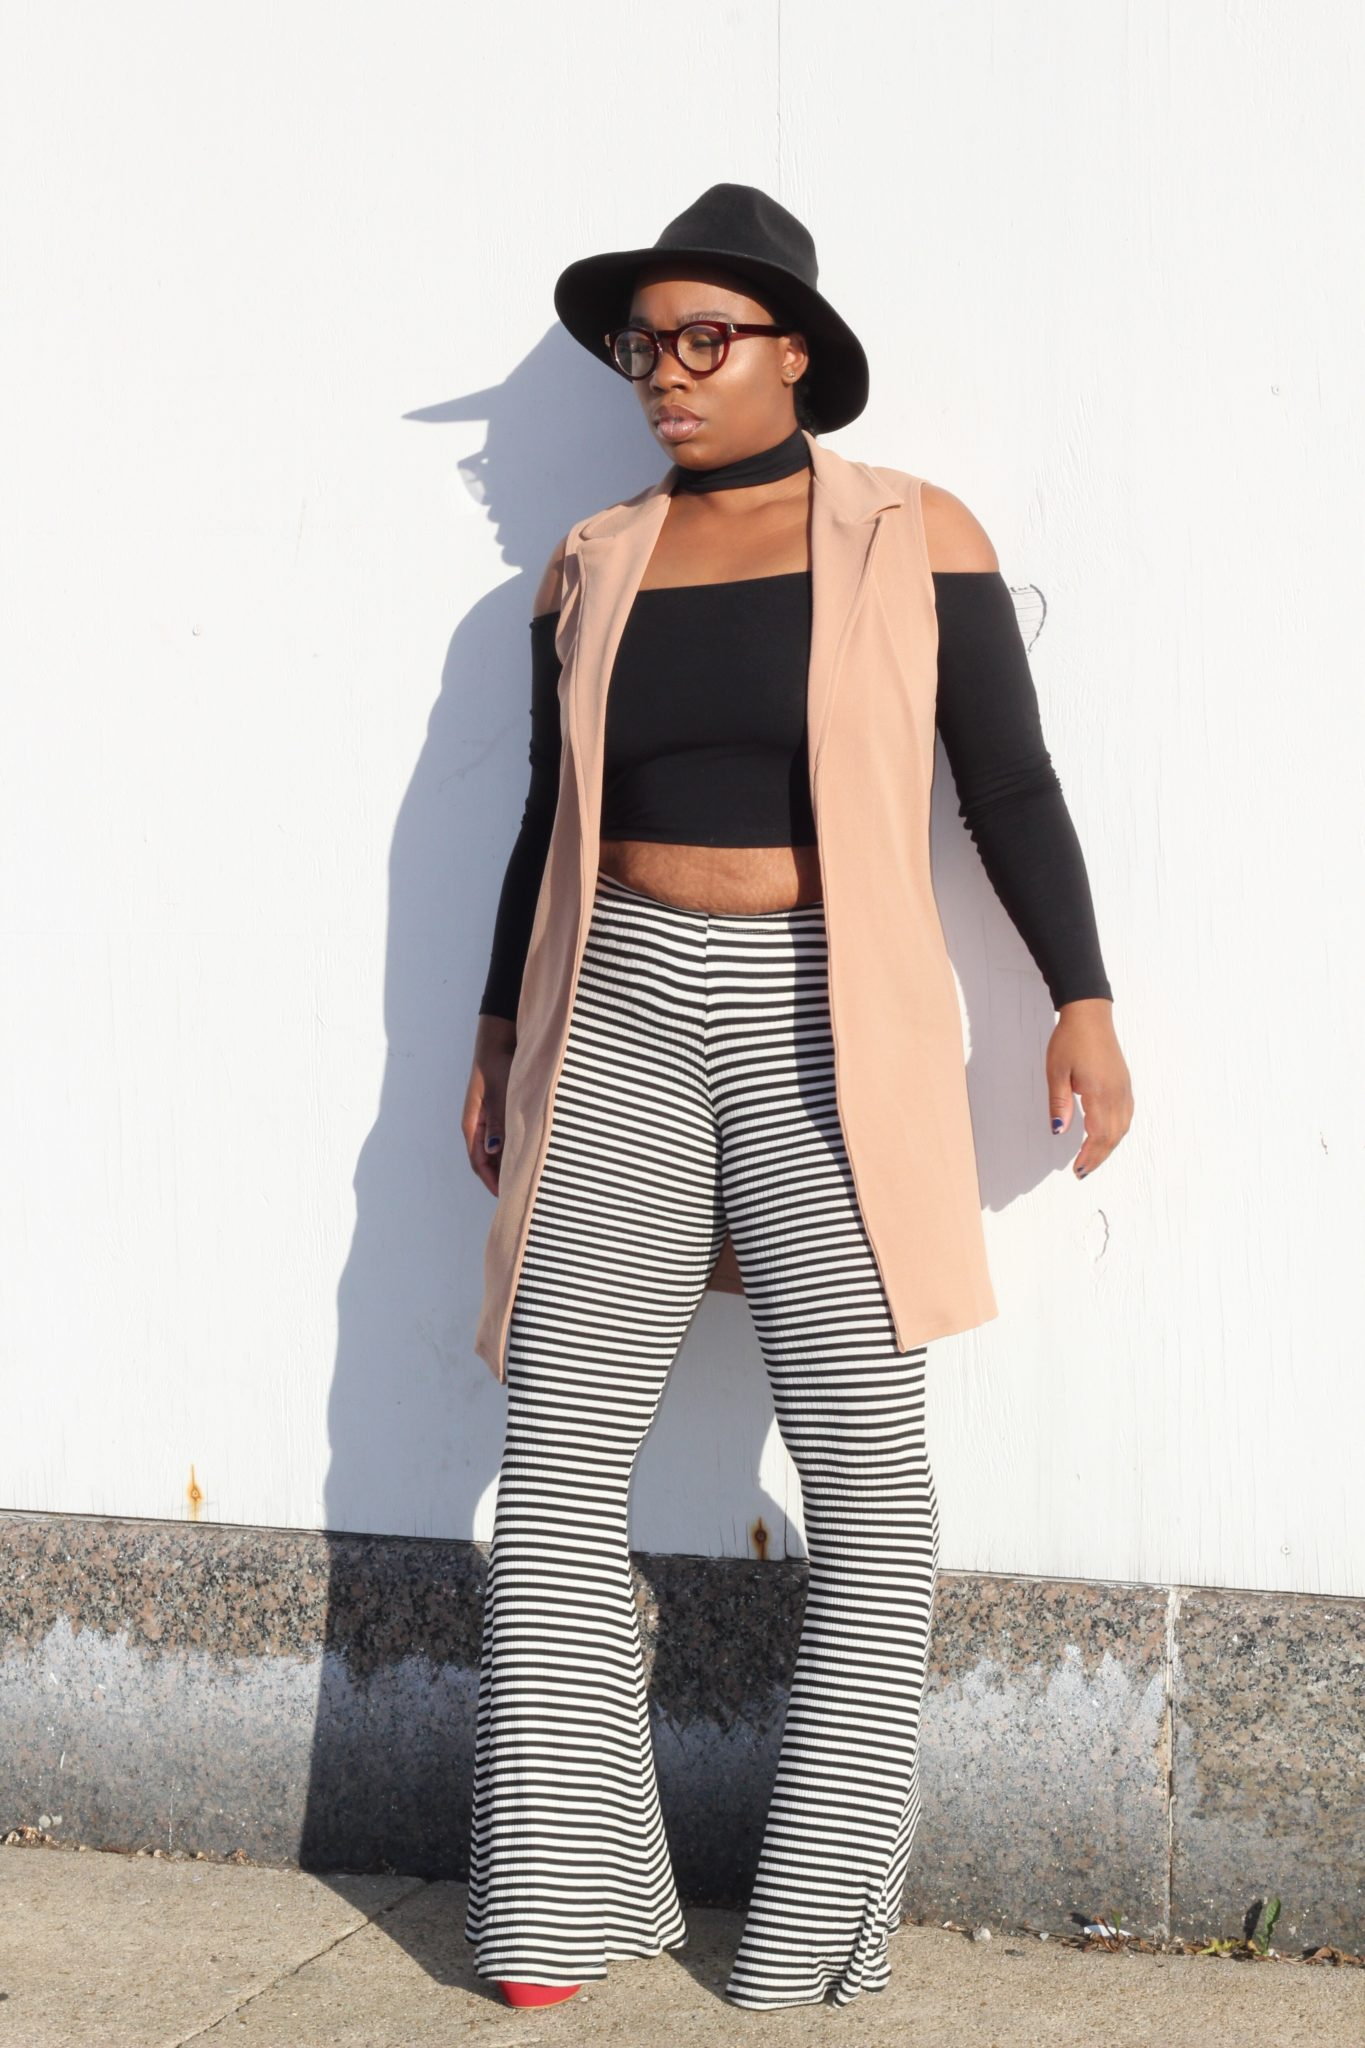 publish_snapshot-55 Shopping Bare/The StylistAmerican Apparel Boohoo Fashion Fashion Nova OOTD Uncategorized